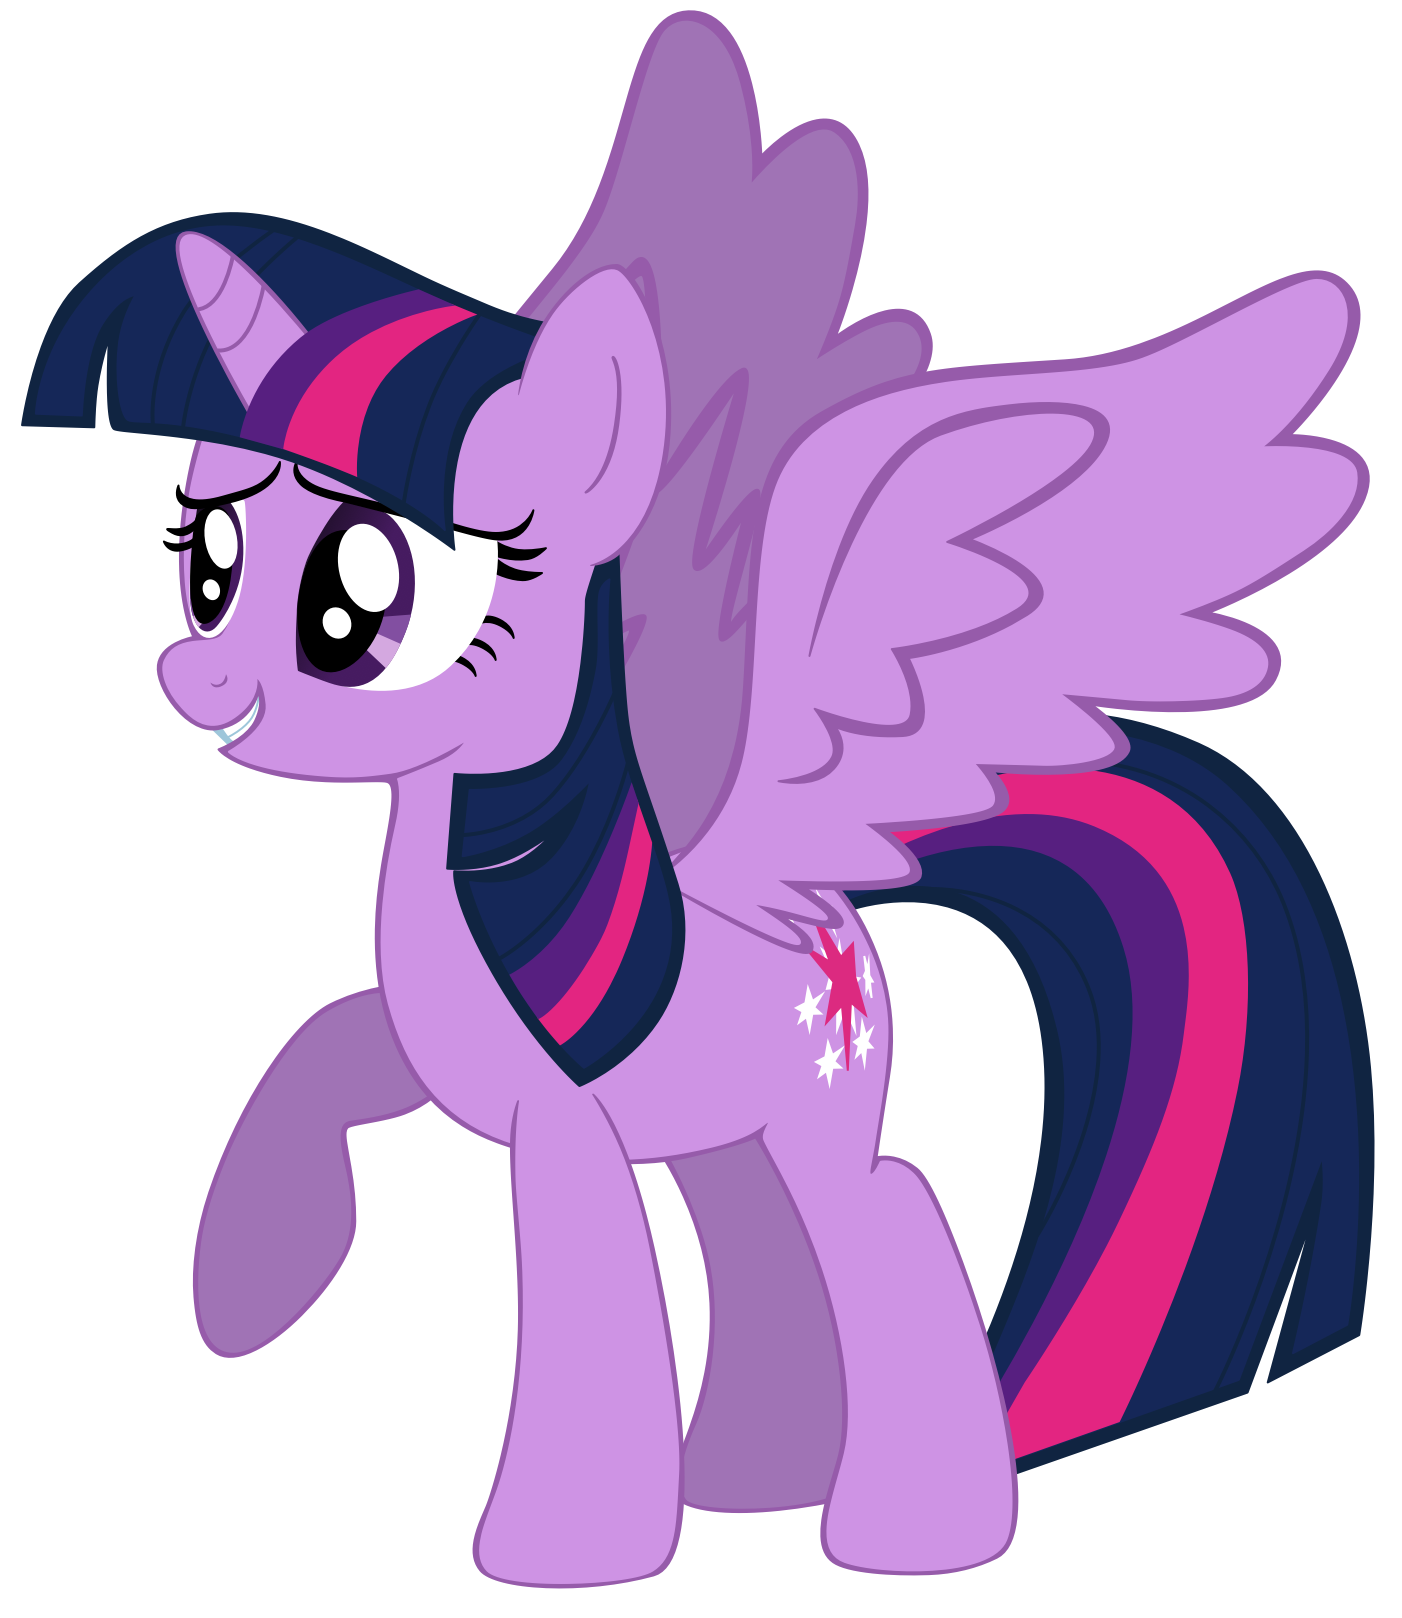 Twilight sparkle png. Image fanmade smiling princess